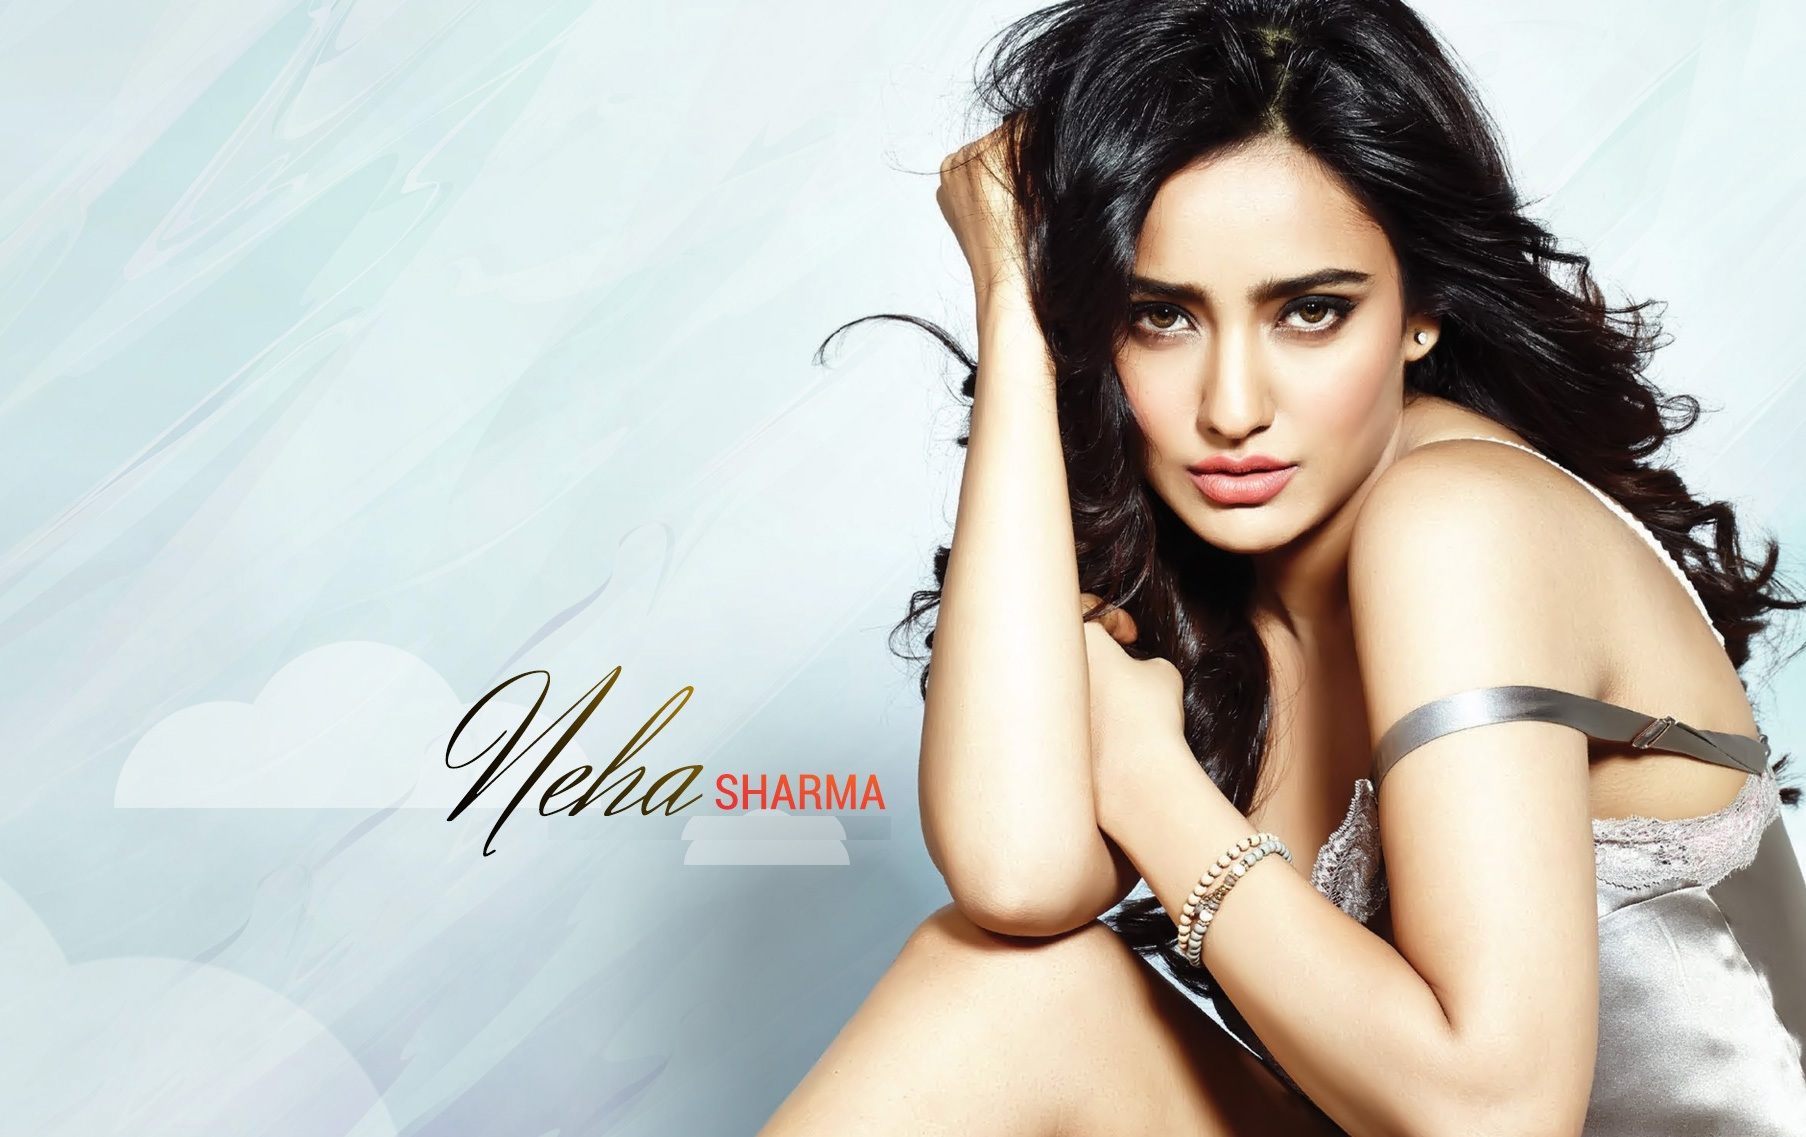 viral hot pictures of neha sharma